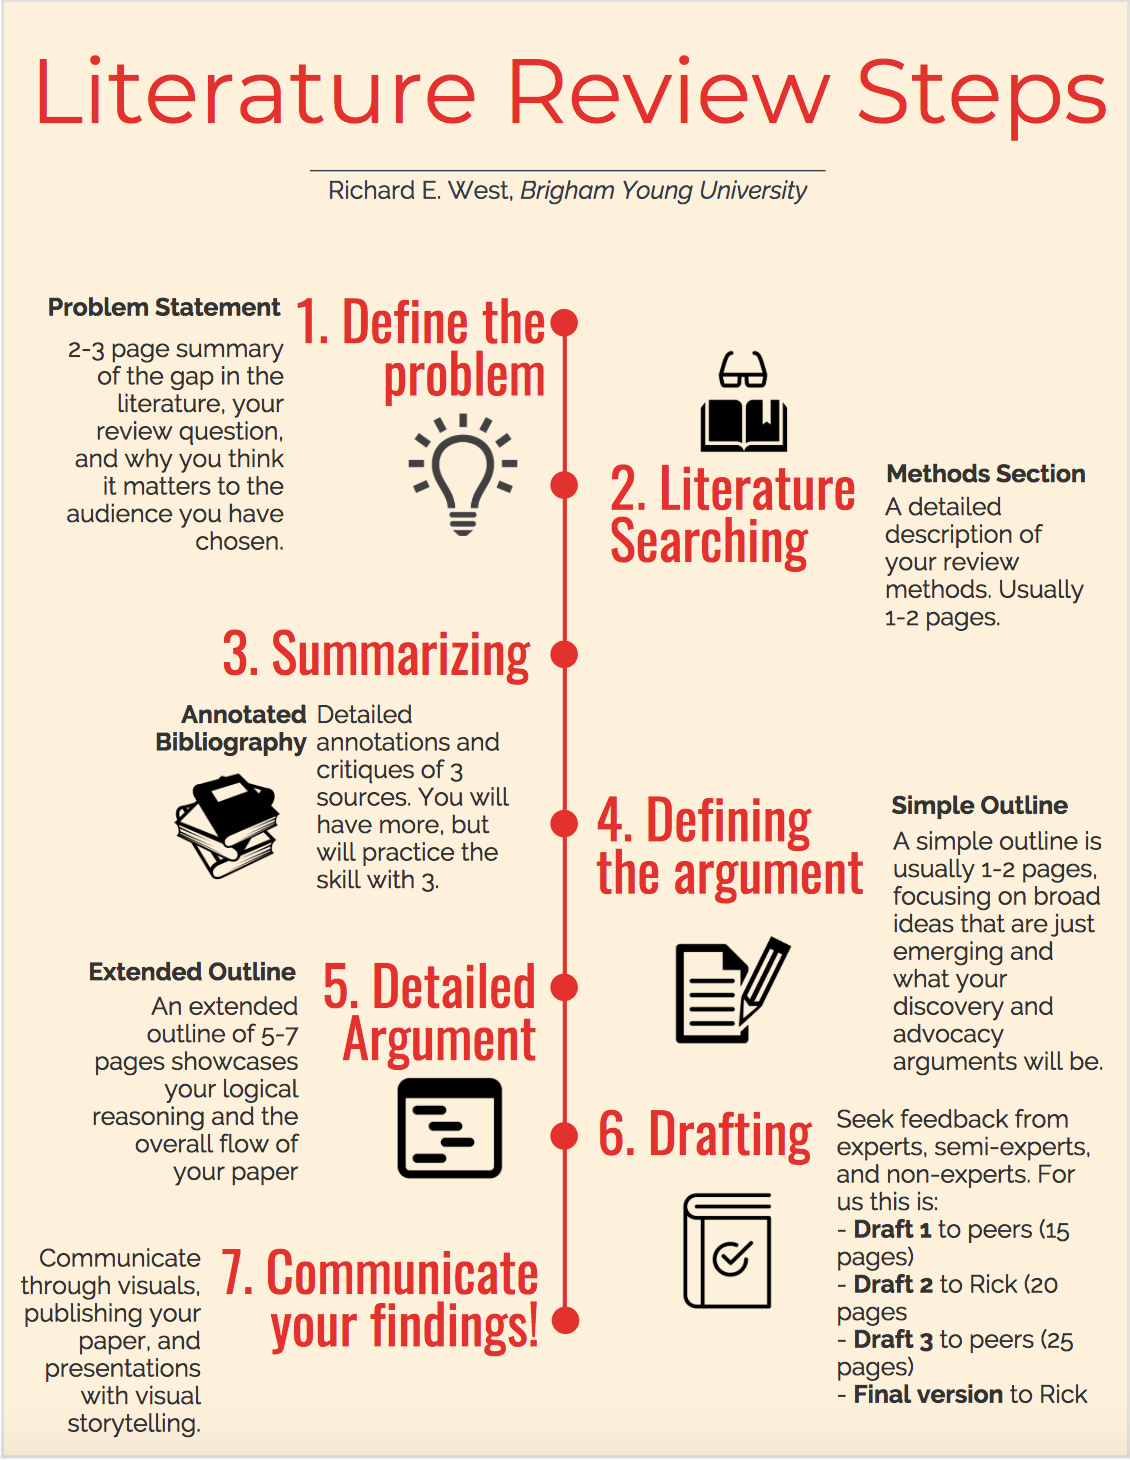 A series of literature review steps